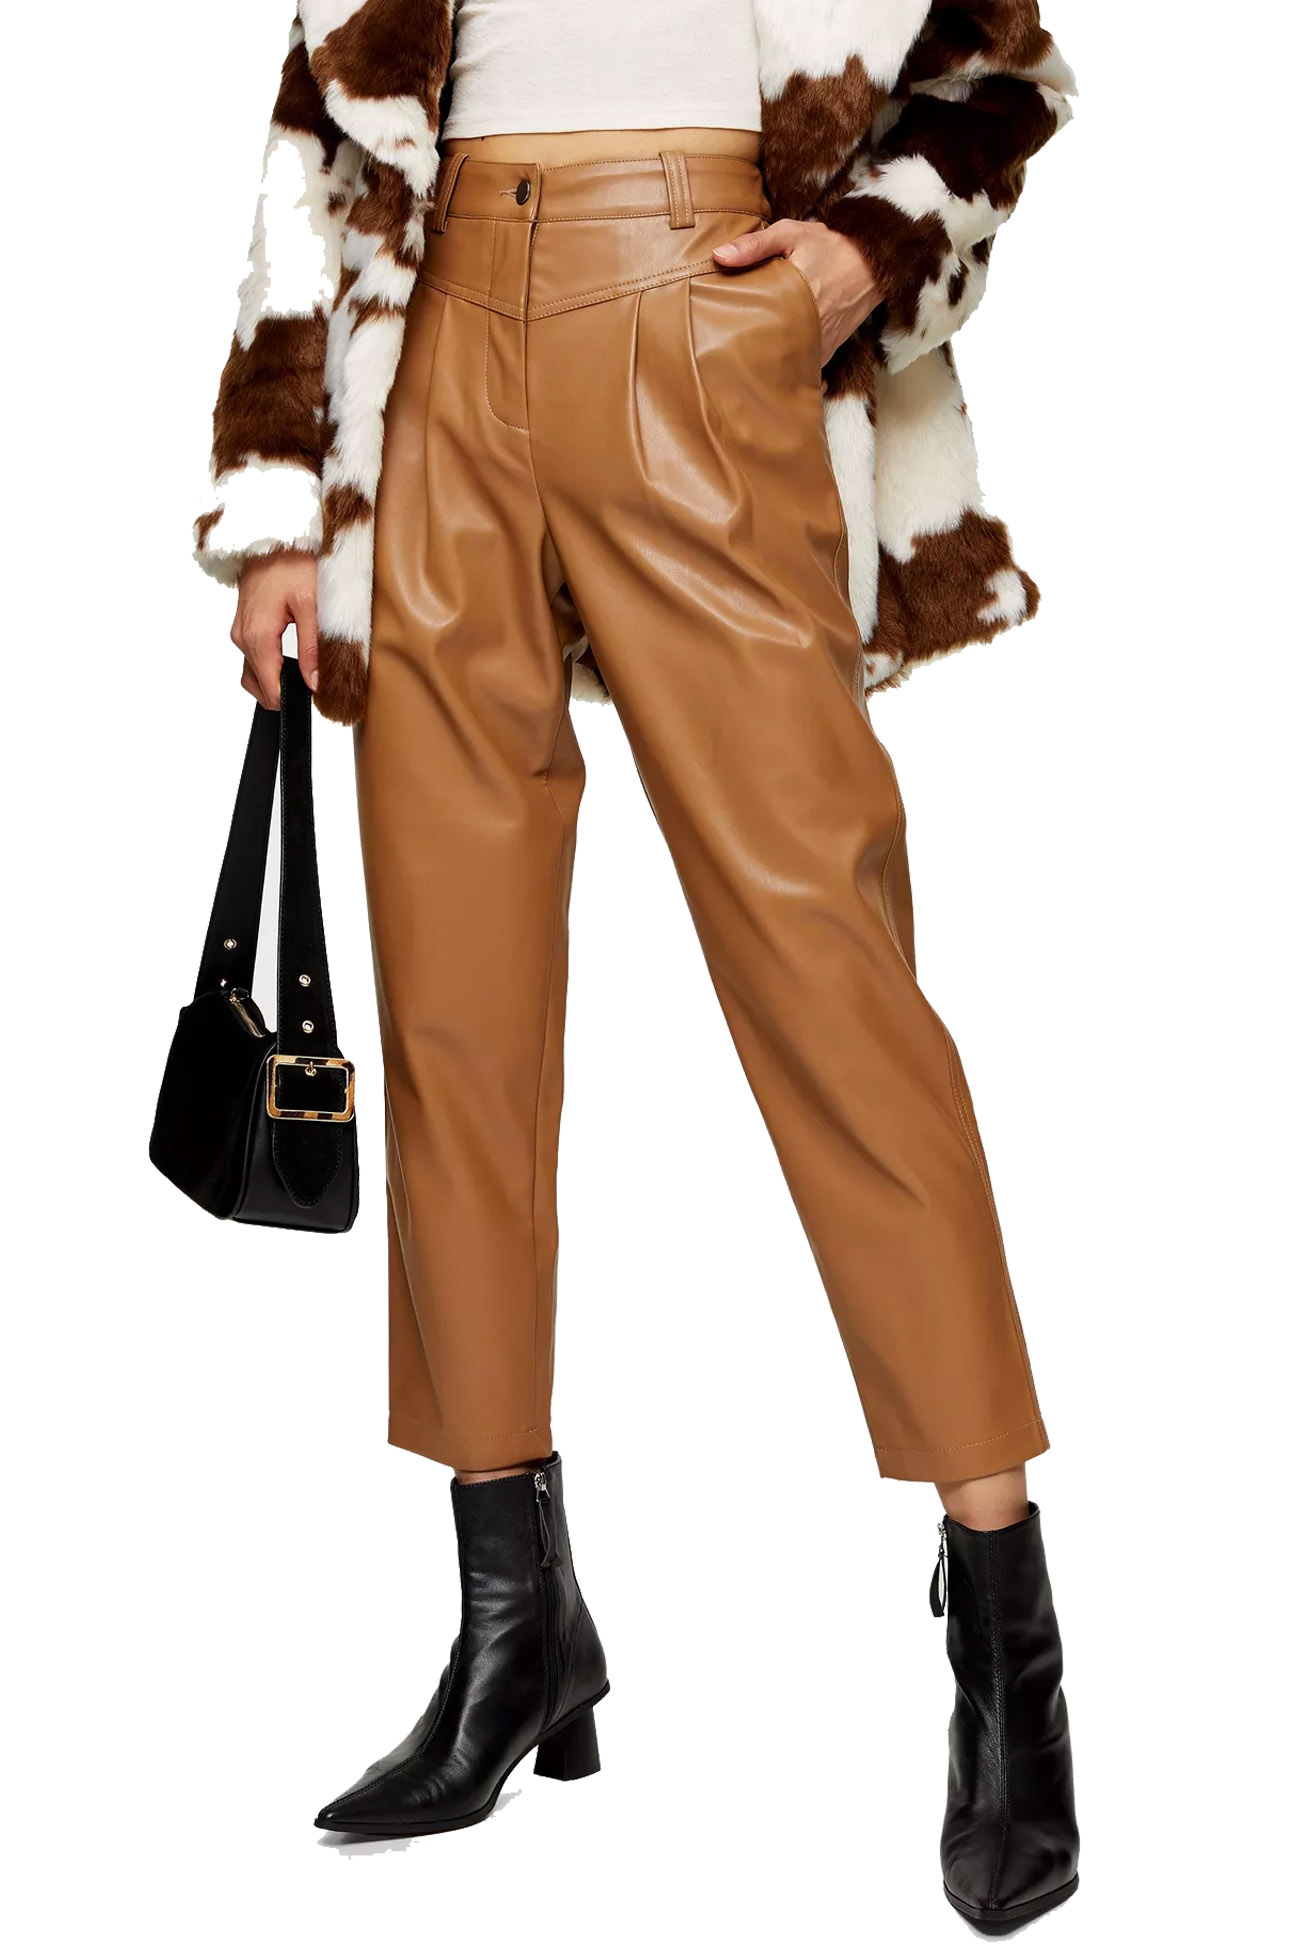 camel trousers topshop